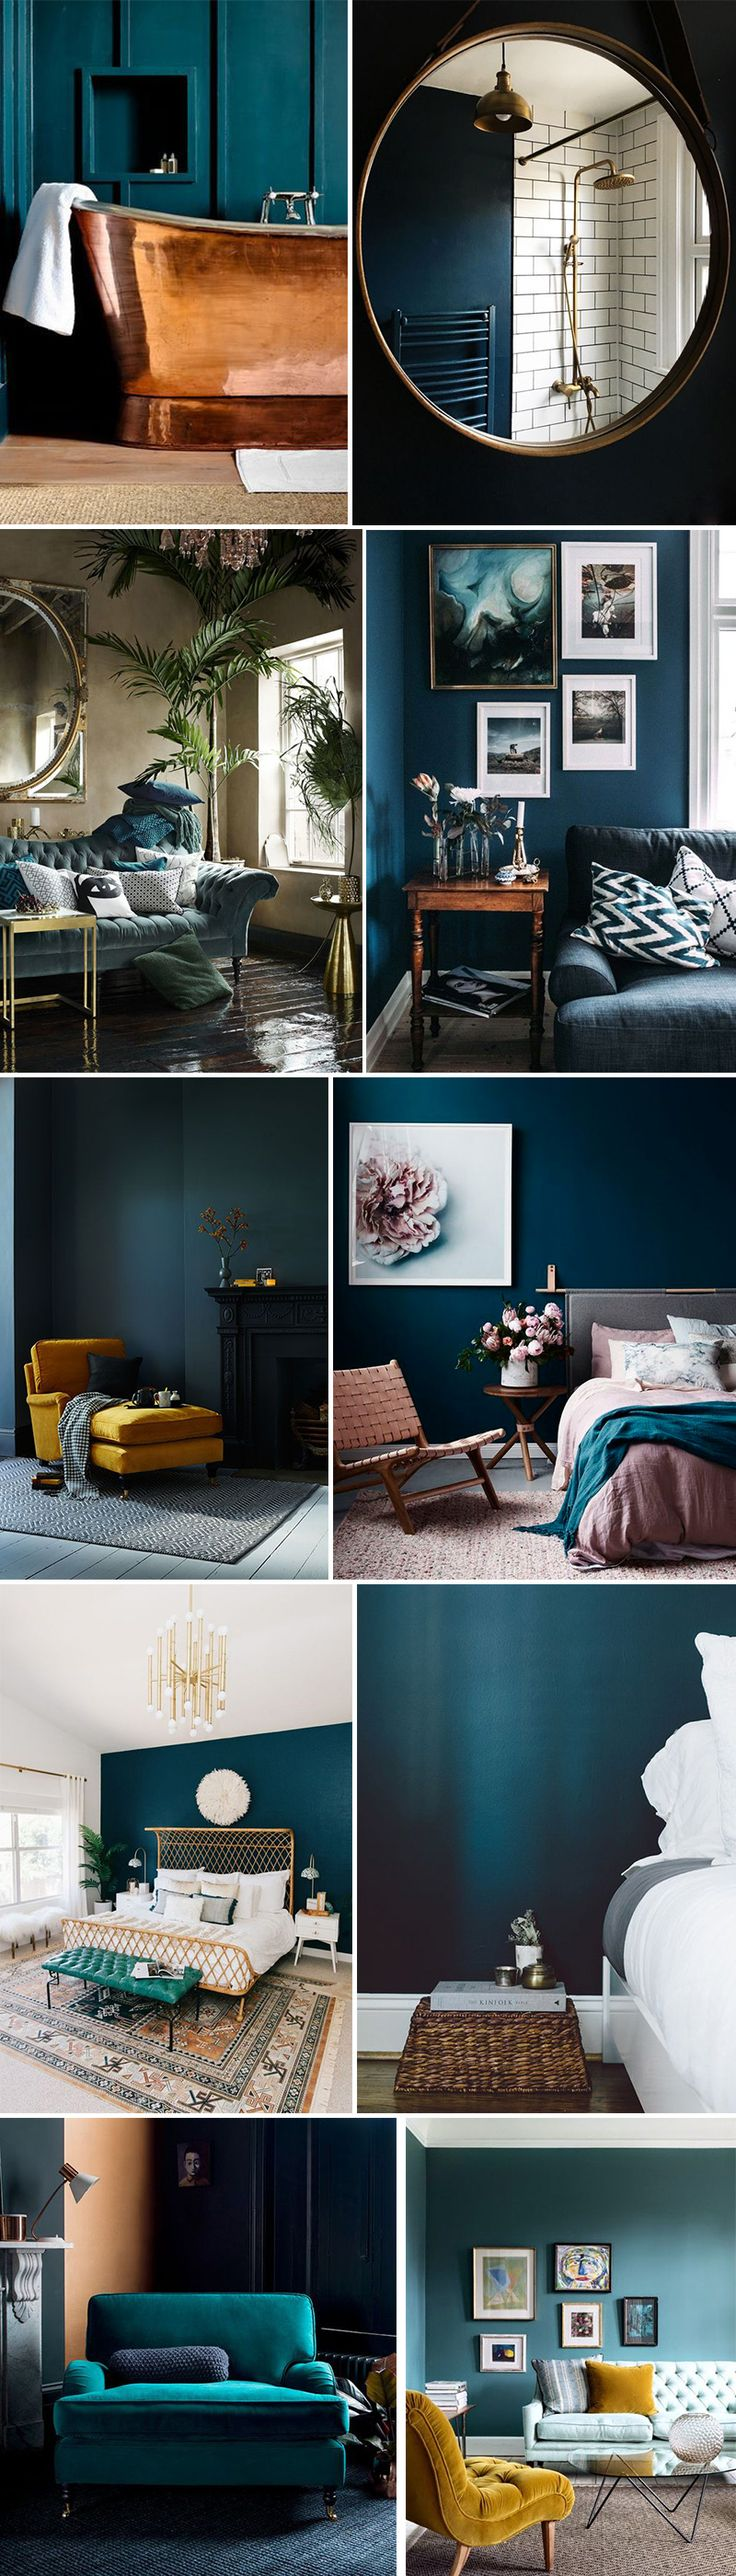 how to decorate with teal | pantone colour of the year | Greenery | decorate with teal and greenery | farrow and ball vardo | Dark interiors | How to decorate with dark colours